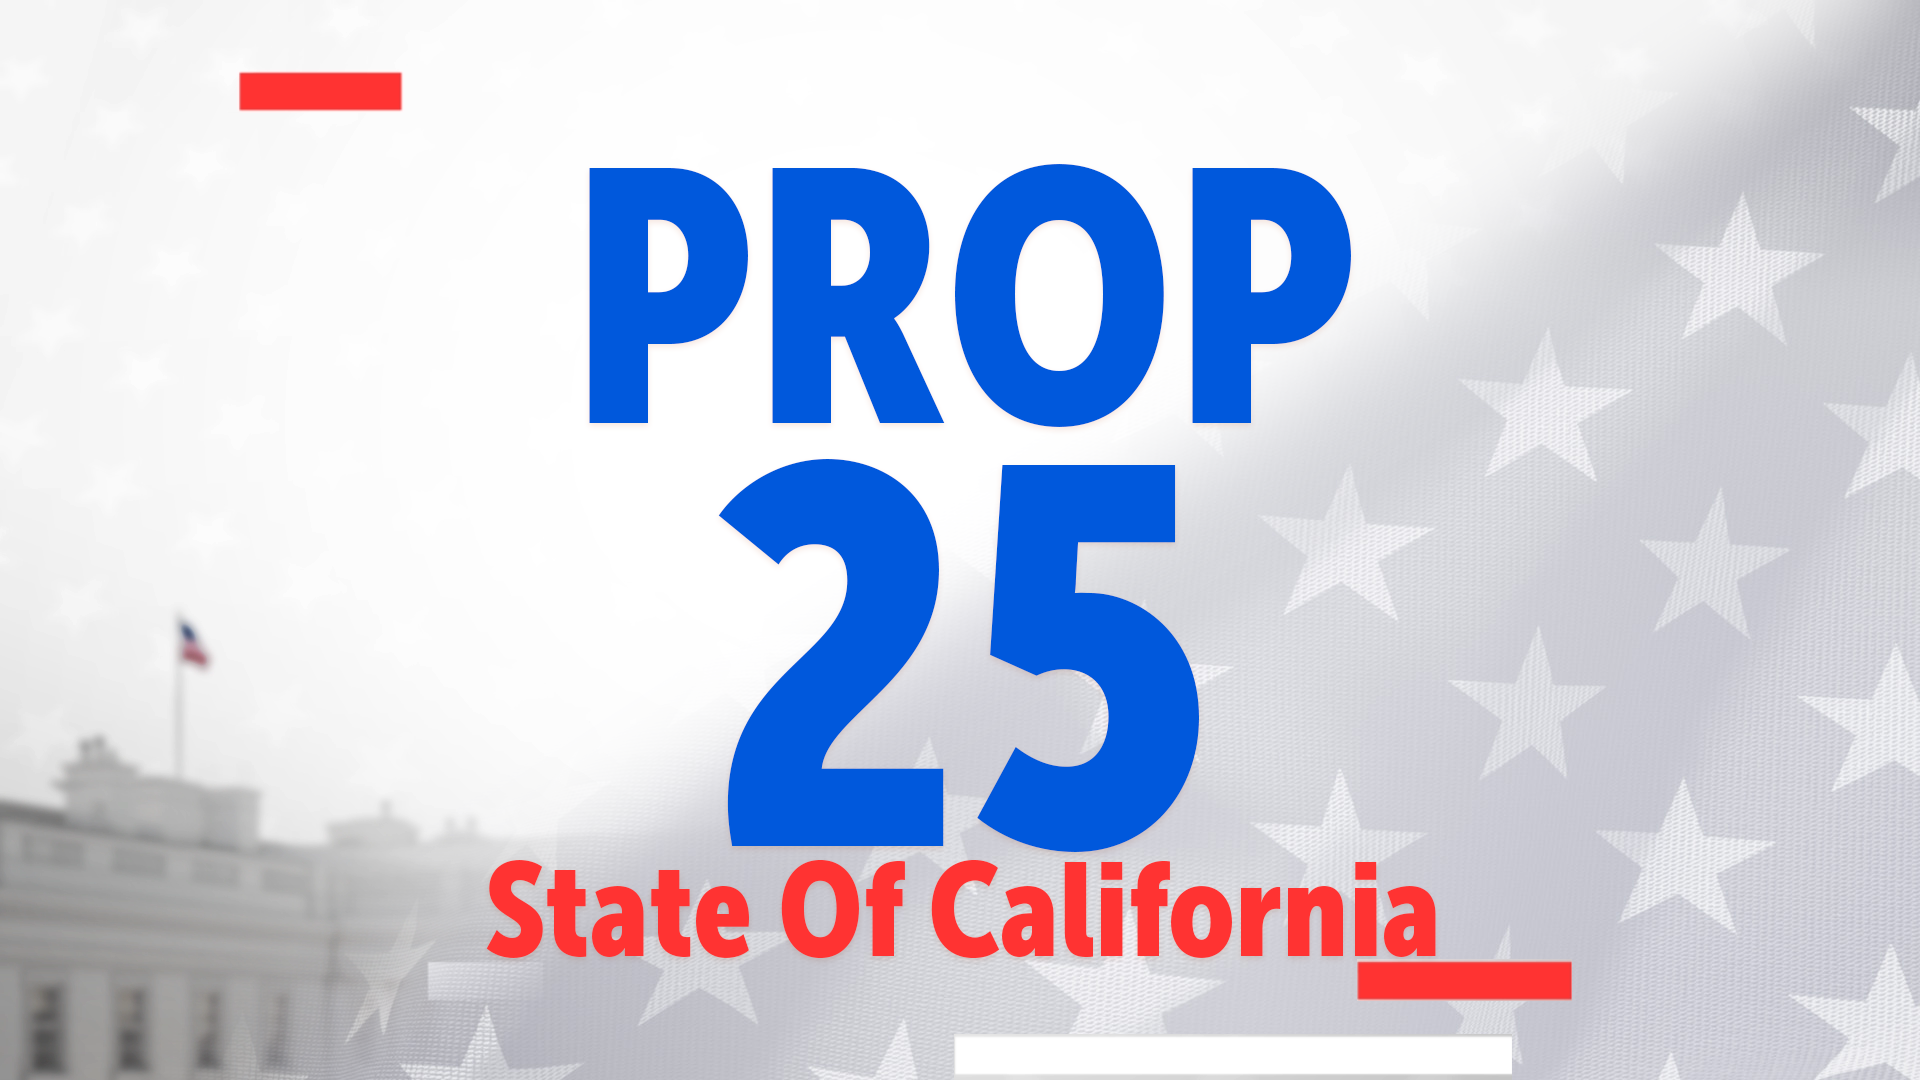 California's Prop 25 Could End The States Cash Bail System